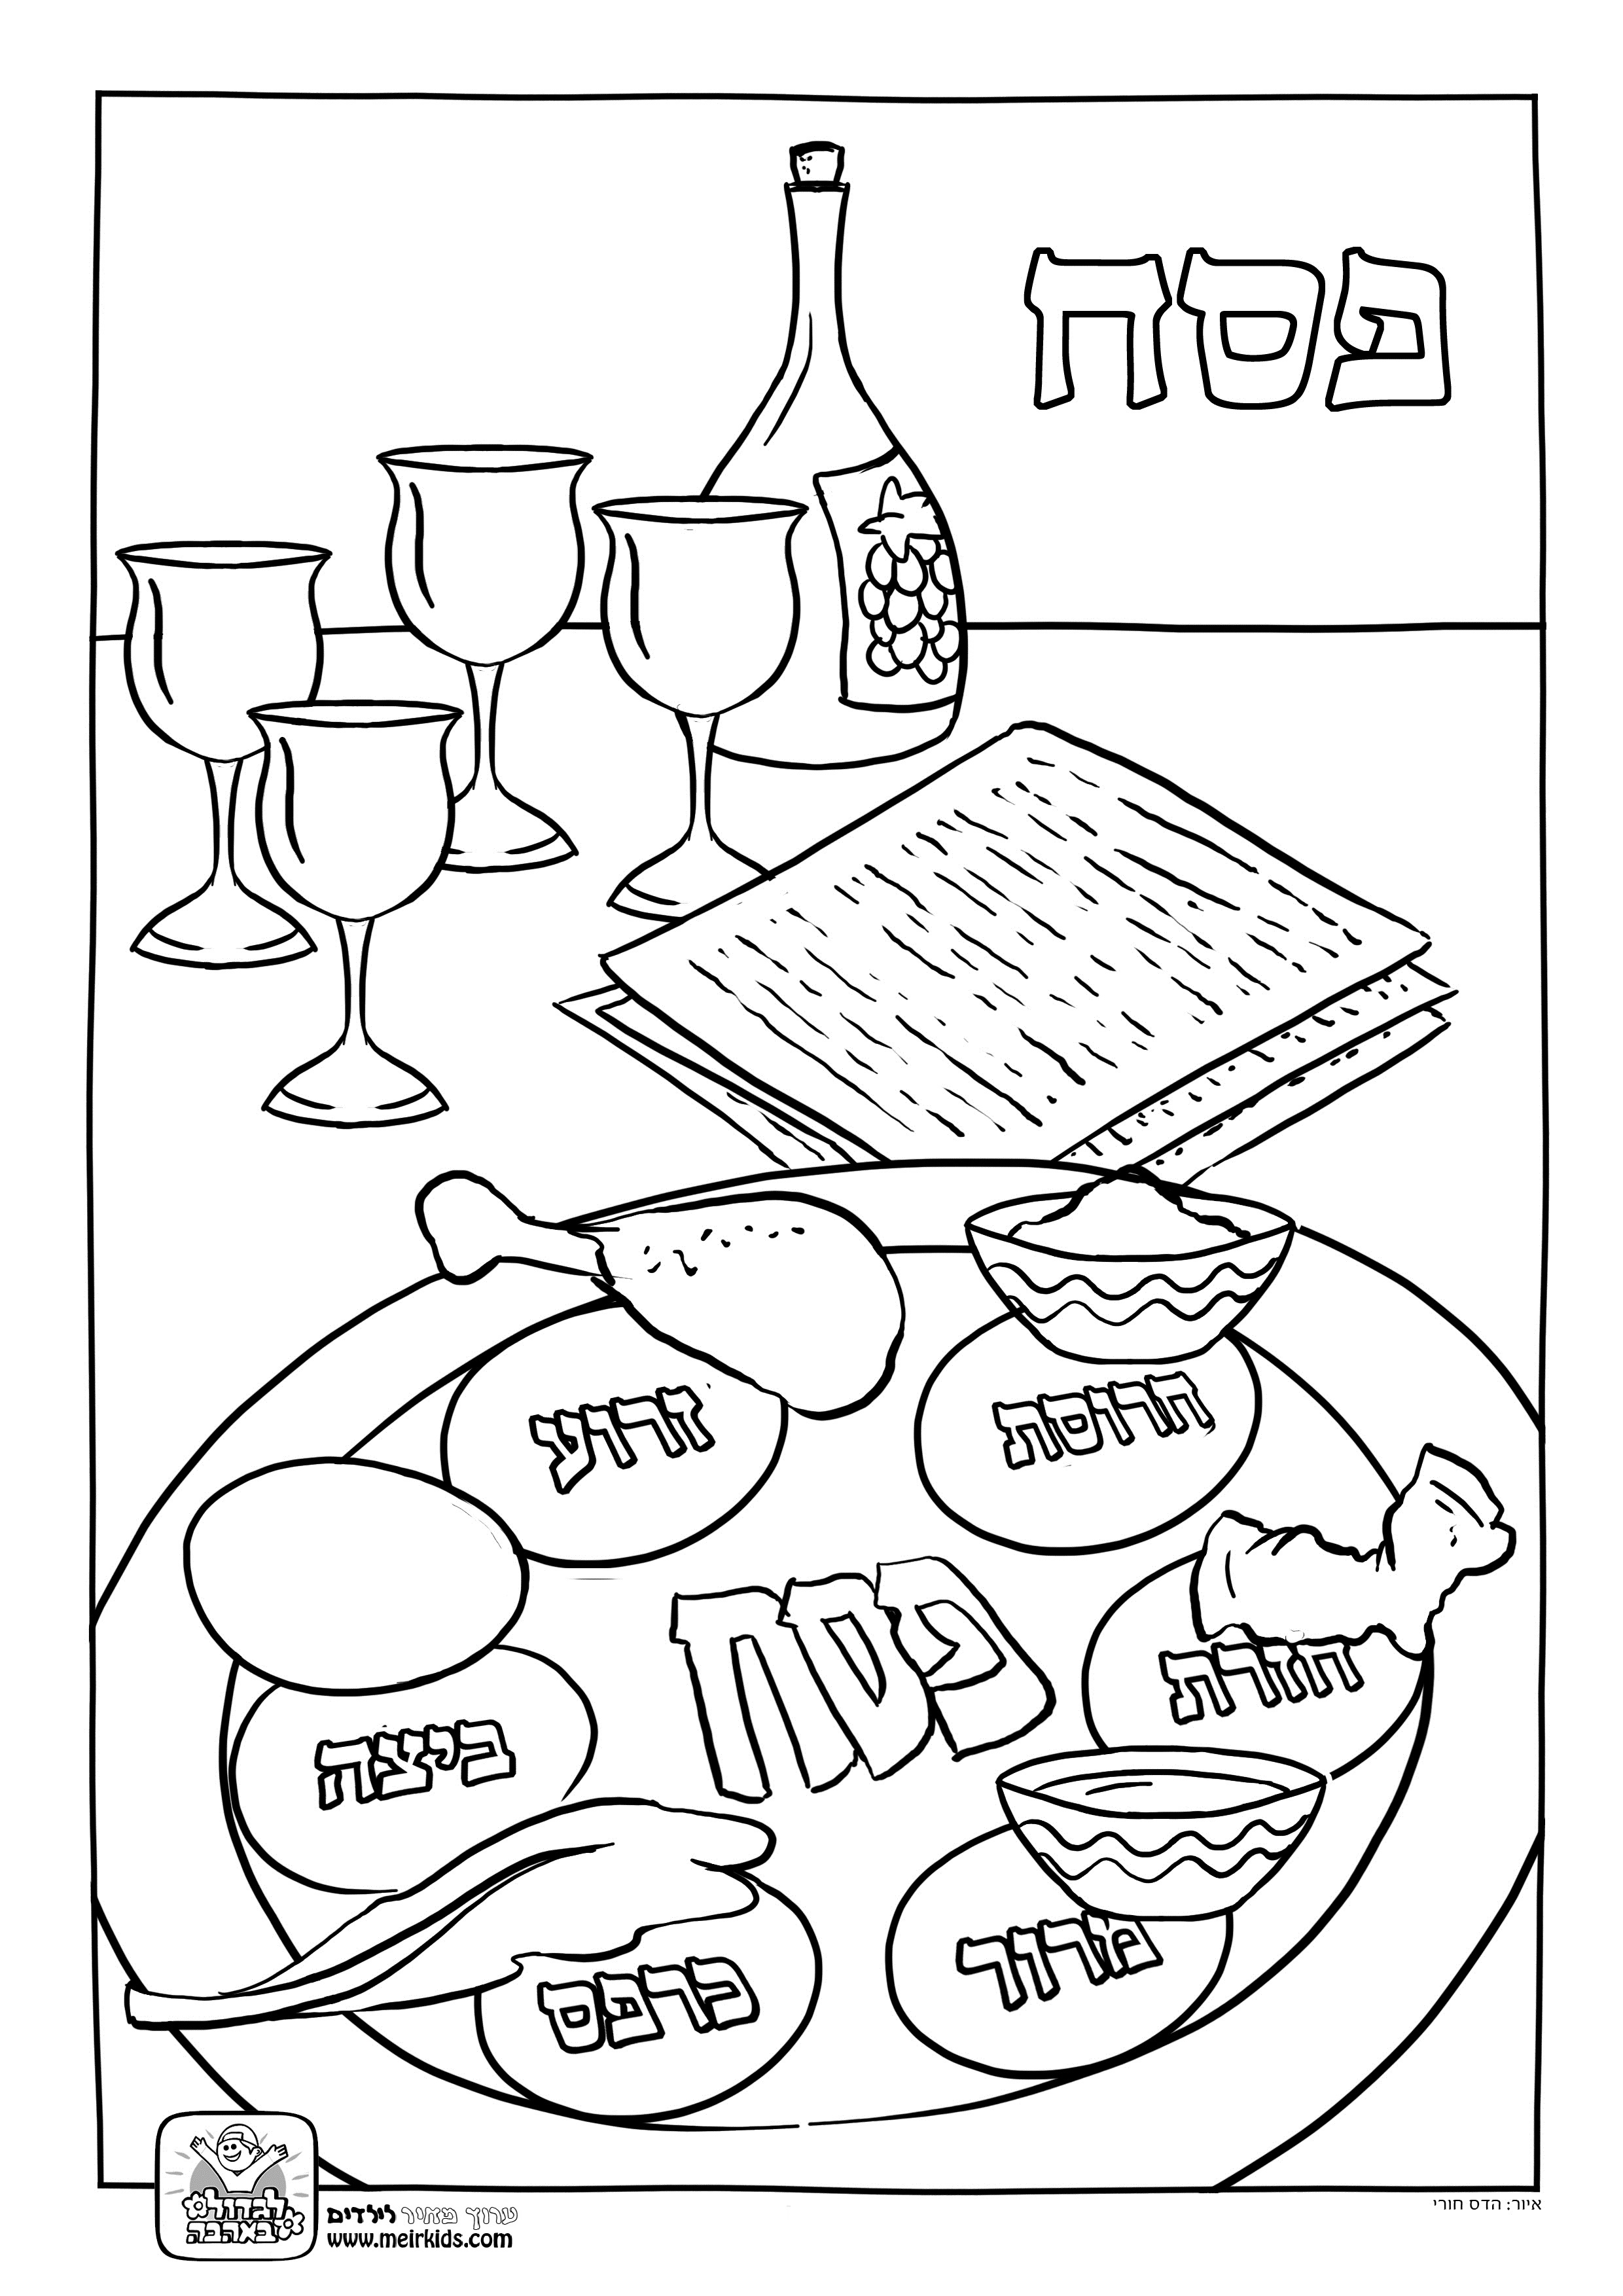 20 Pesach Coloring Pages Selection | FREE COLORING PAGES - Part 3